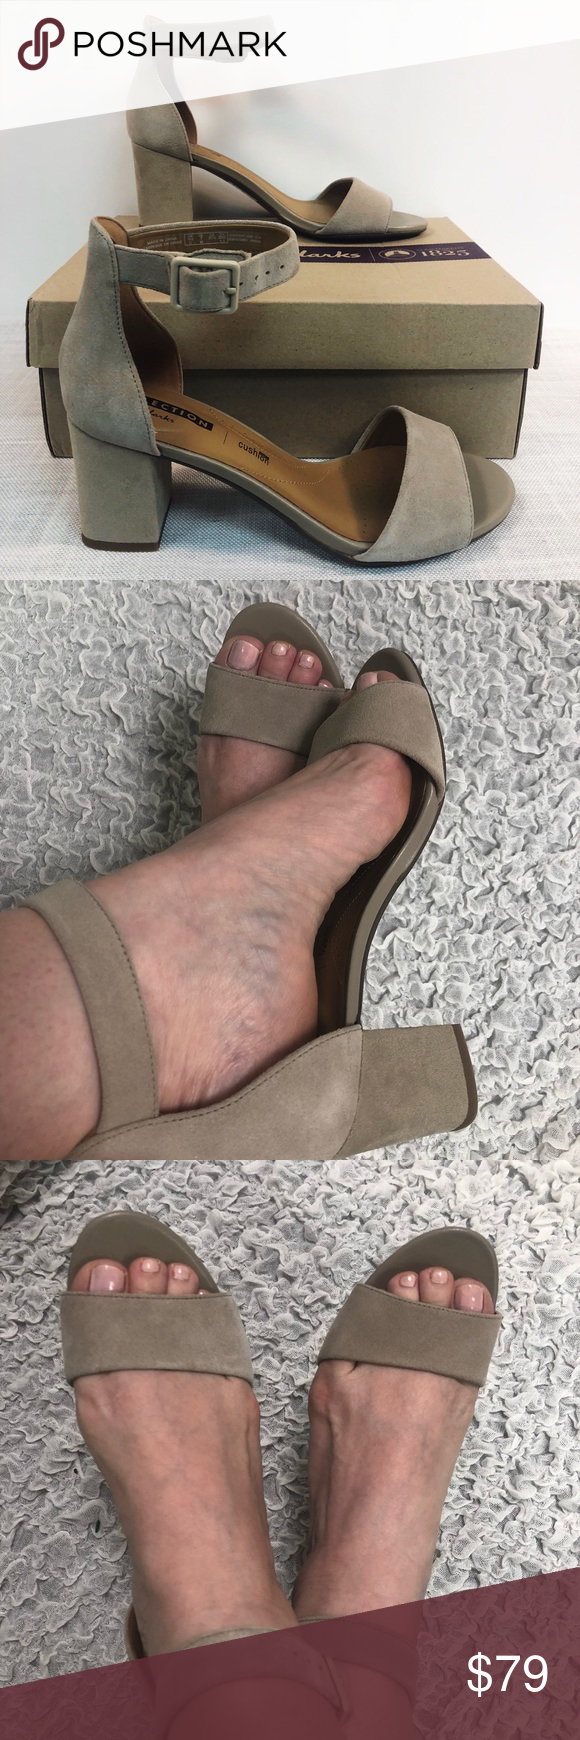 "fddf30c8009 NWT Clarks 7M tan suede sandal heels ankle strap Clark s 7M Brand new tan  suede leather block heeled ankle strap sandals New in box 2.75"" heel ""deva  Mae"" ..."